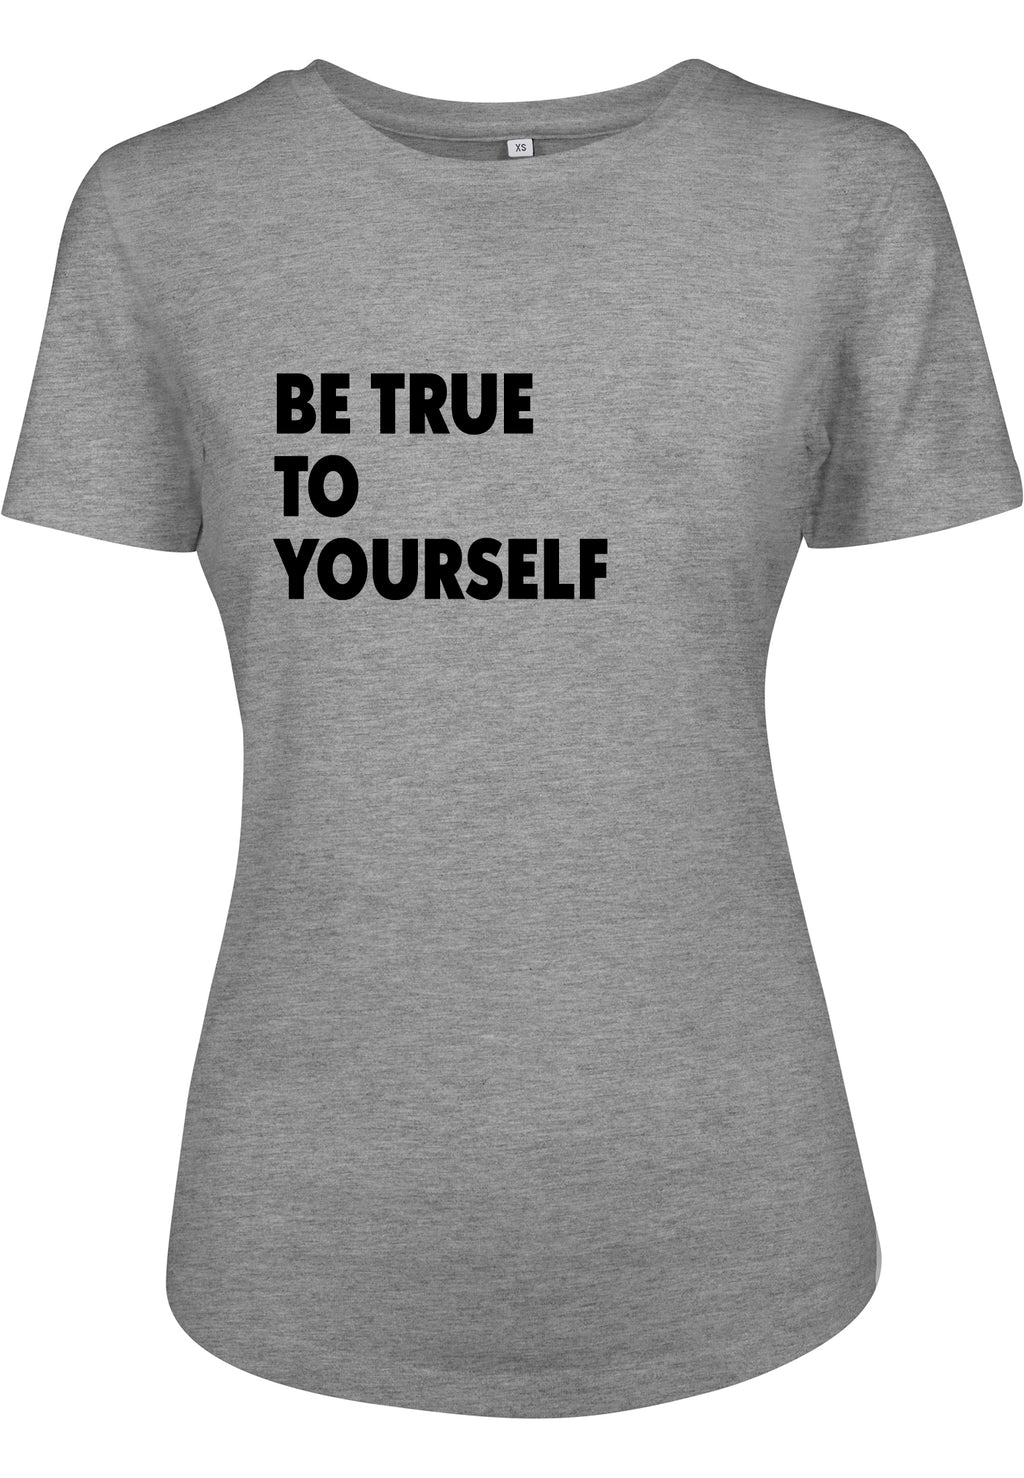 Womens BE TRUE Fitted Tee (Heather Grey)